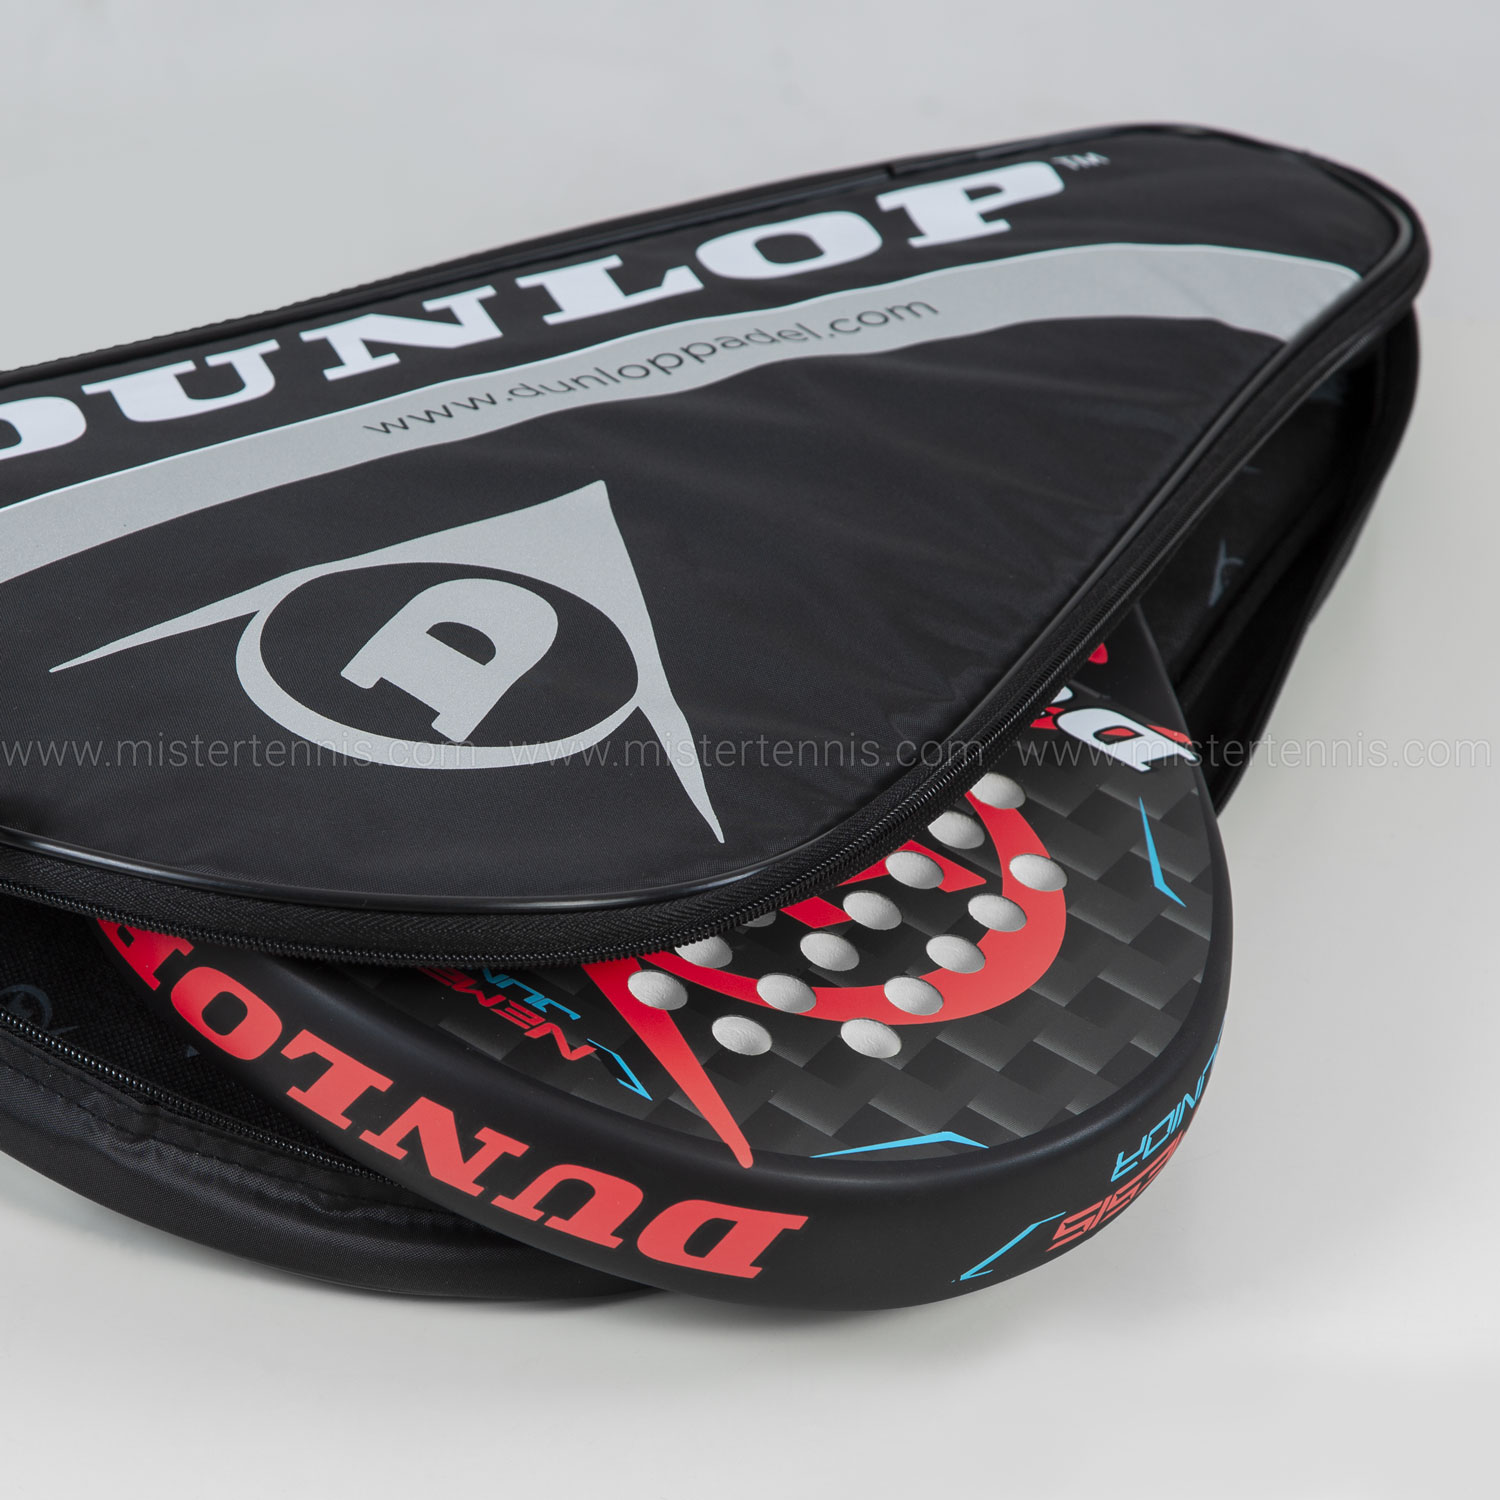 Dunlop Pro Cover - Black/White